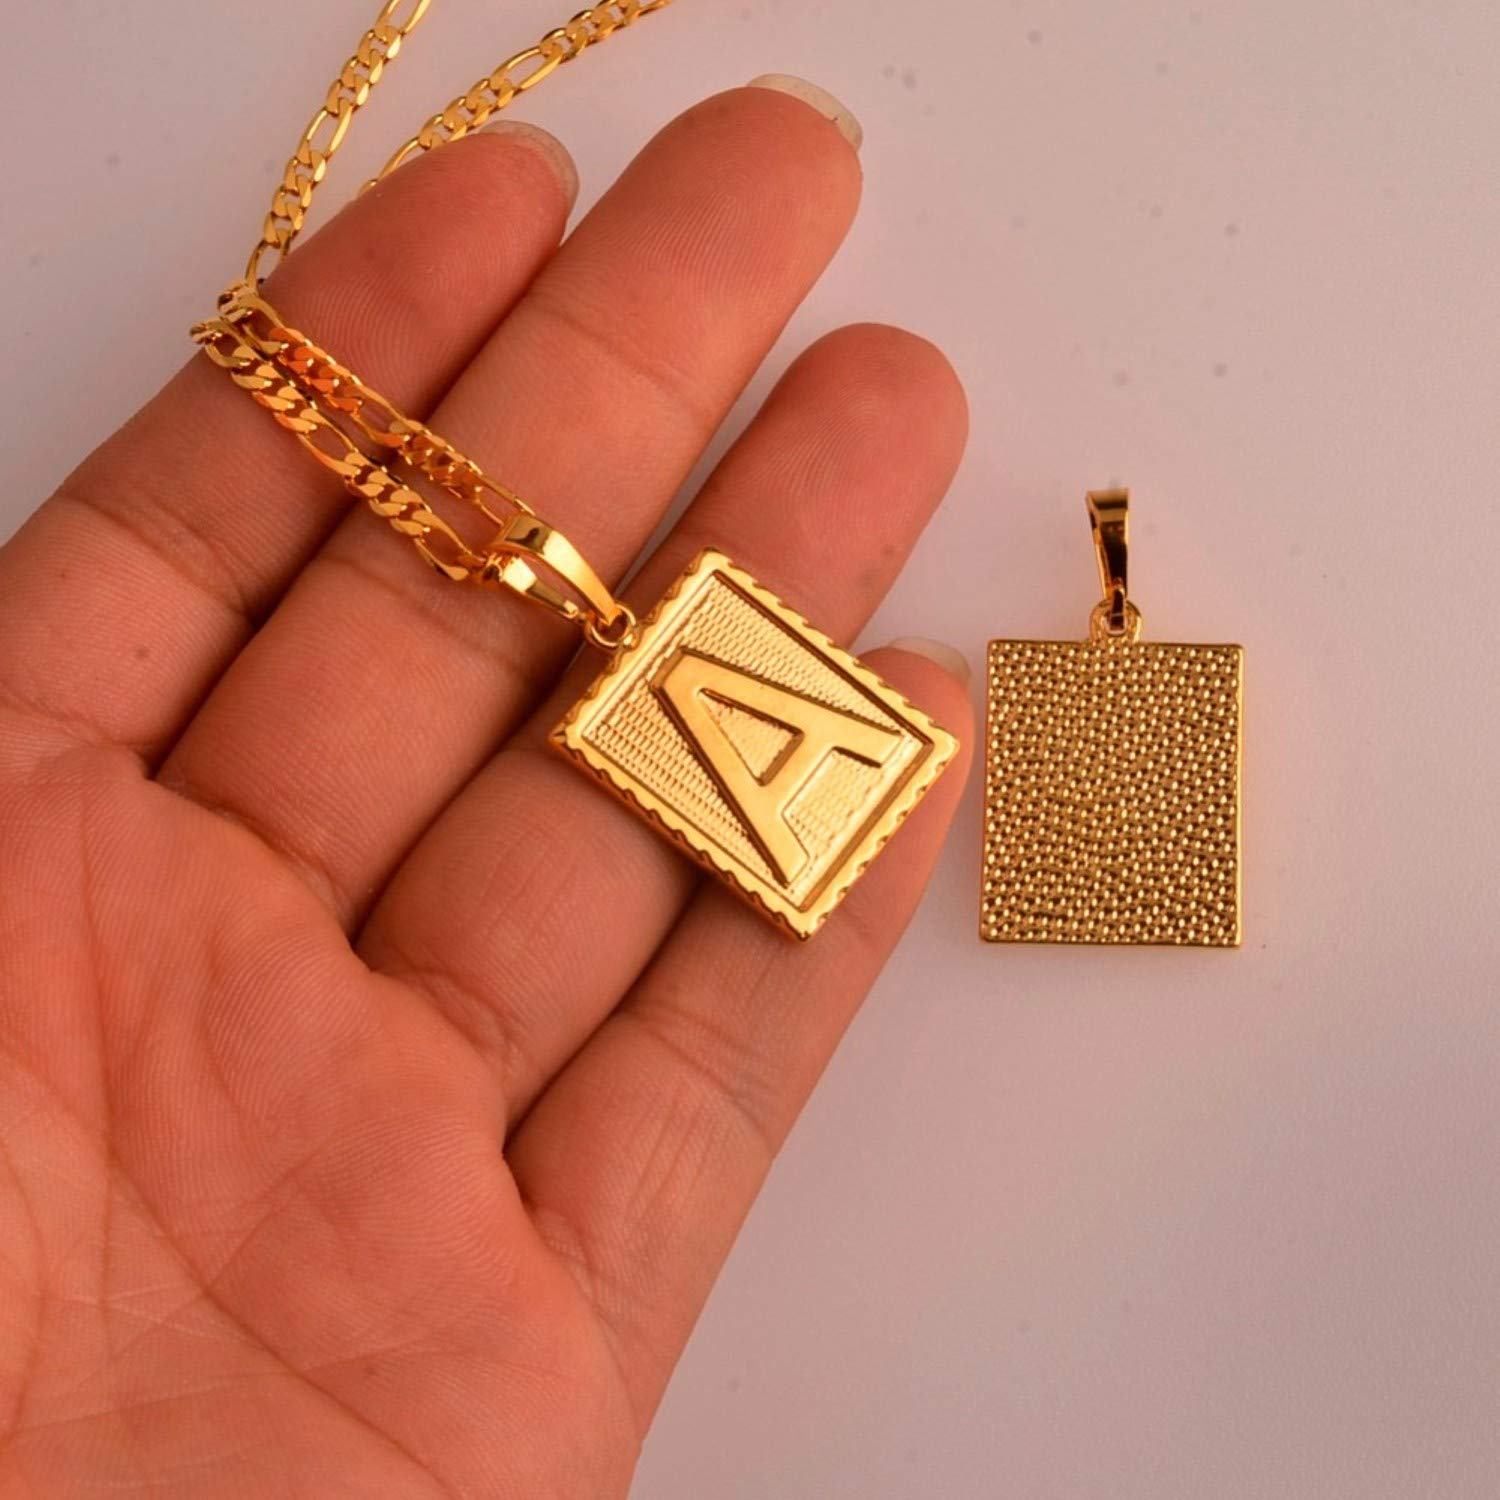 a Z Square Letters Necklace Gold Color Initial Pendant Chain for Men Women English Letter Alphabet Jewelry Gifts #104006 Choose Letter E 45cm by 3mm Chain Pendant Necklace